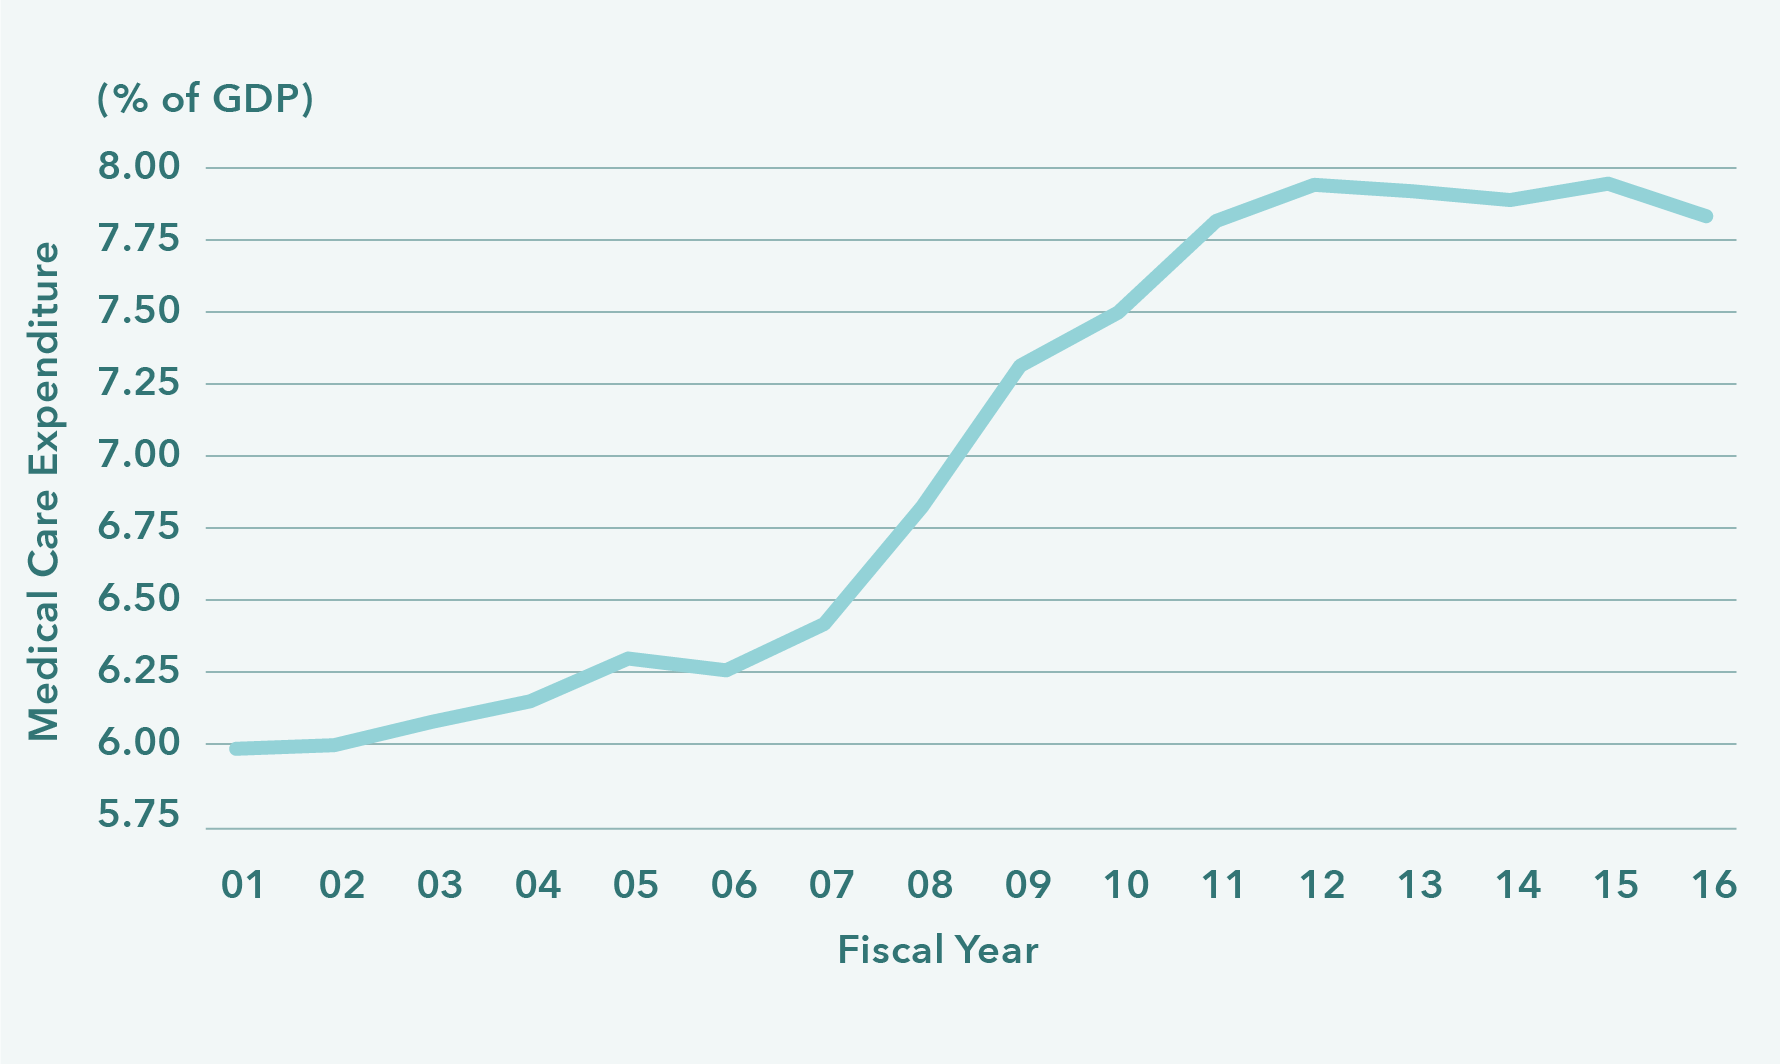 Medical Care Expenditure (% of GDP)